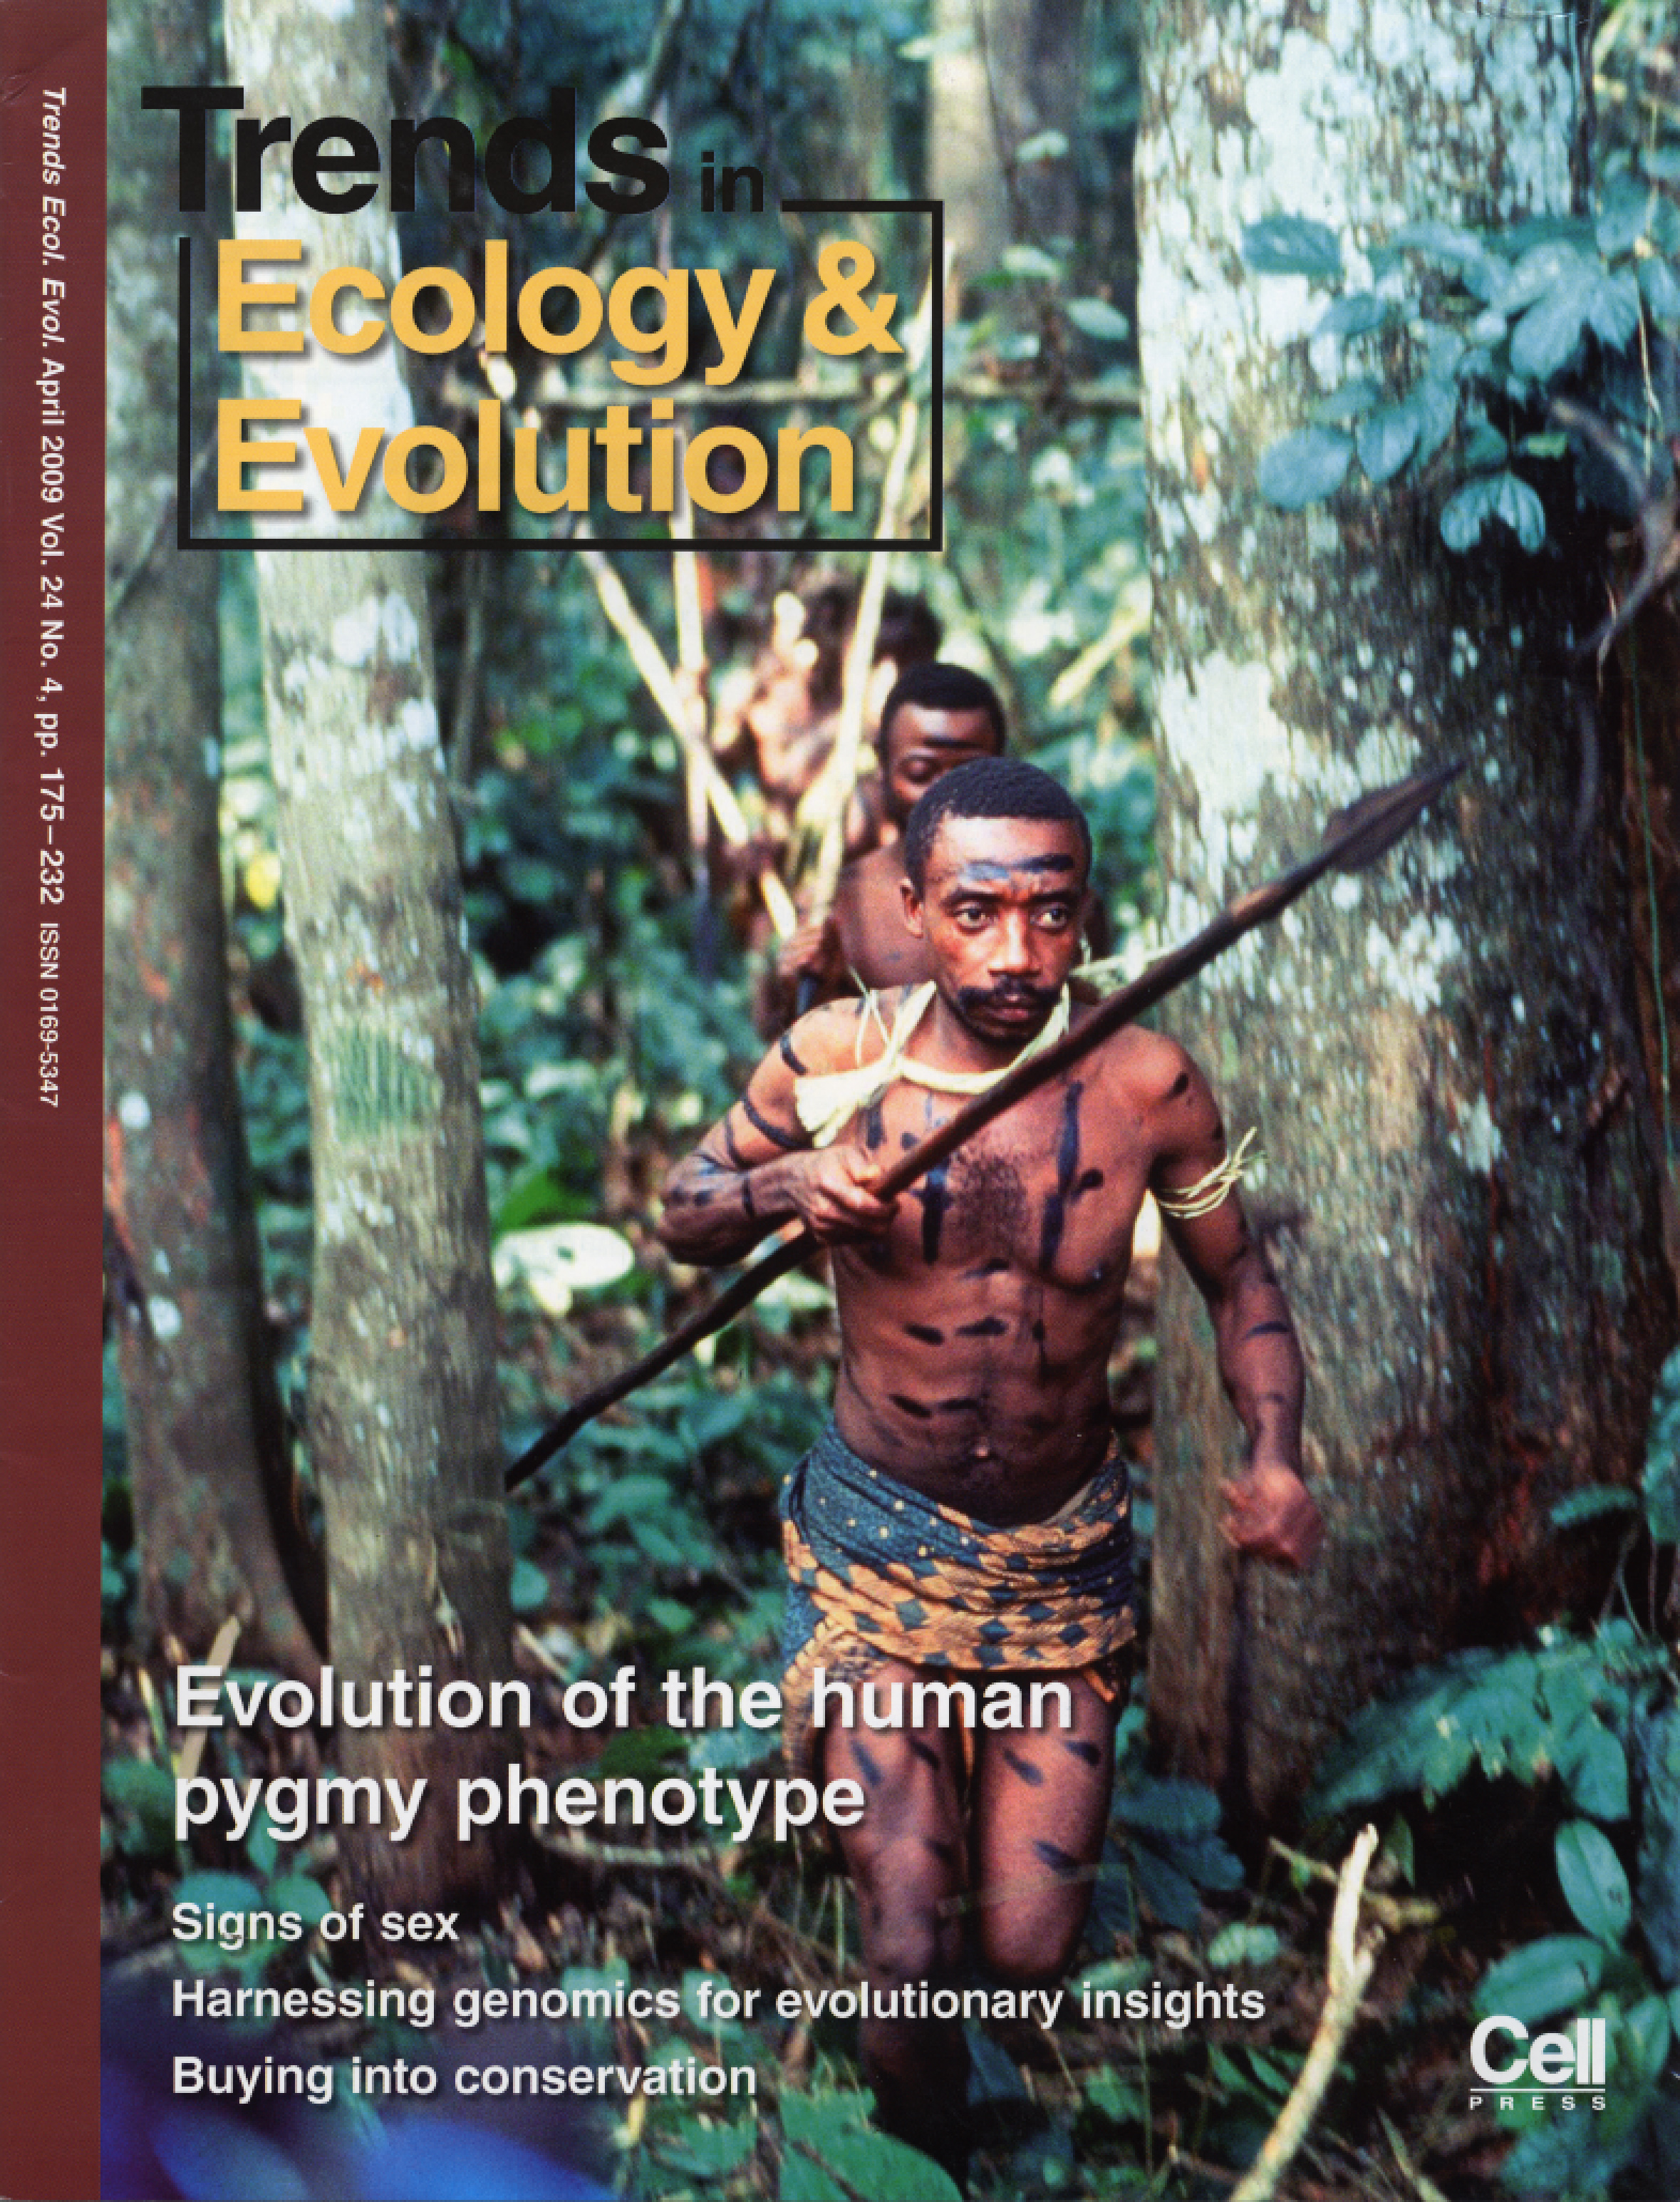 Trends in Ecology and Evolution  cover for  Perry & Dominy (2009) .